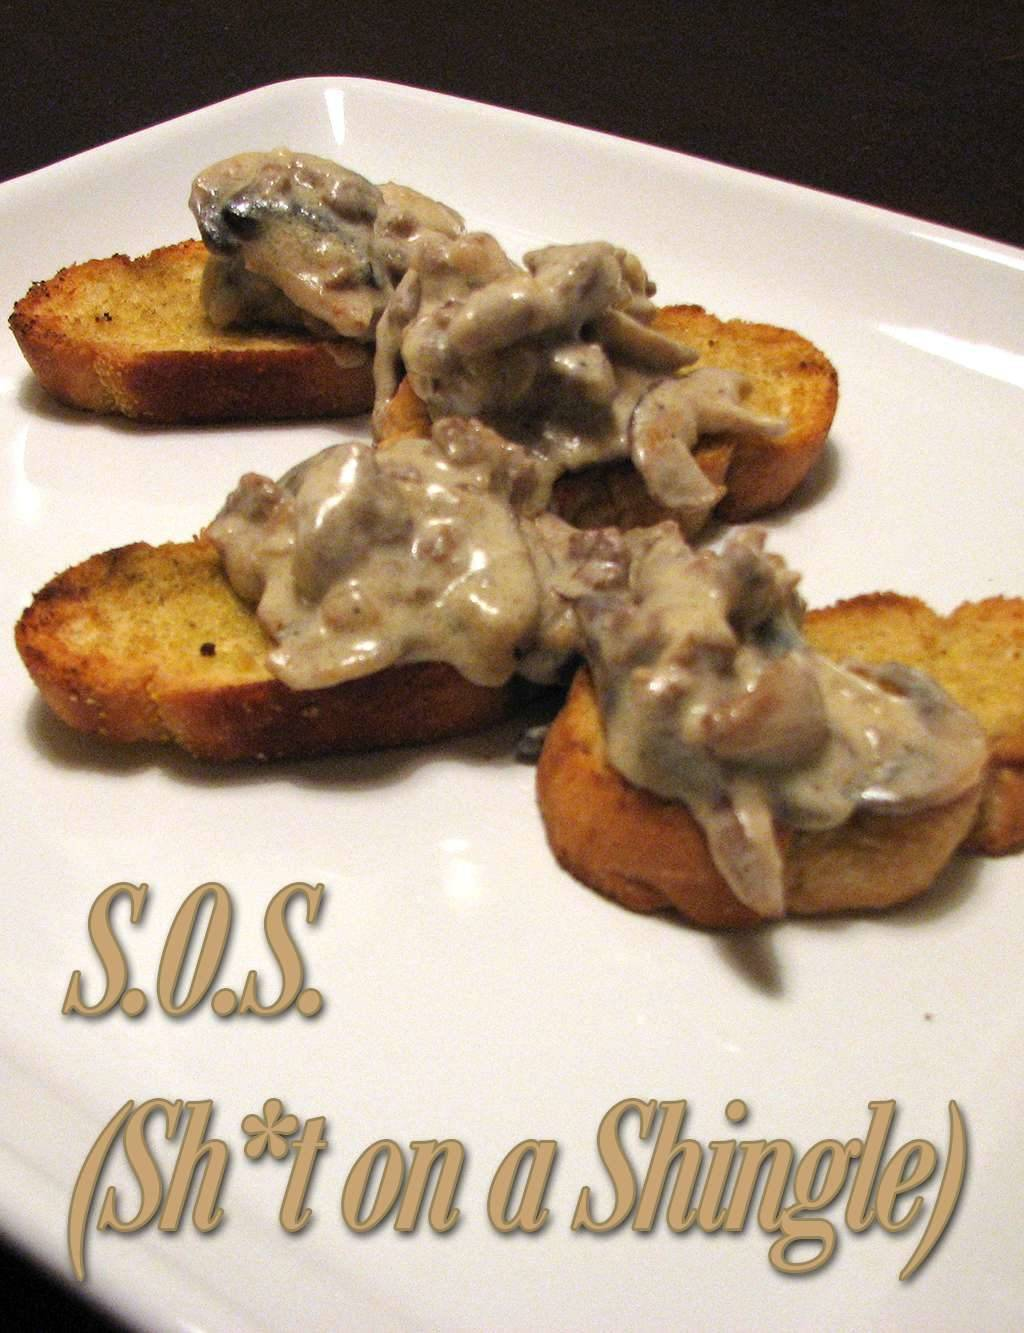 S.O.S. (Shit on a Shingle) – A Reimagined Comfort Food Classic